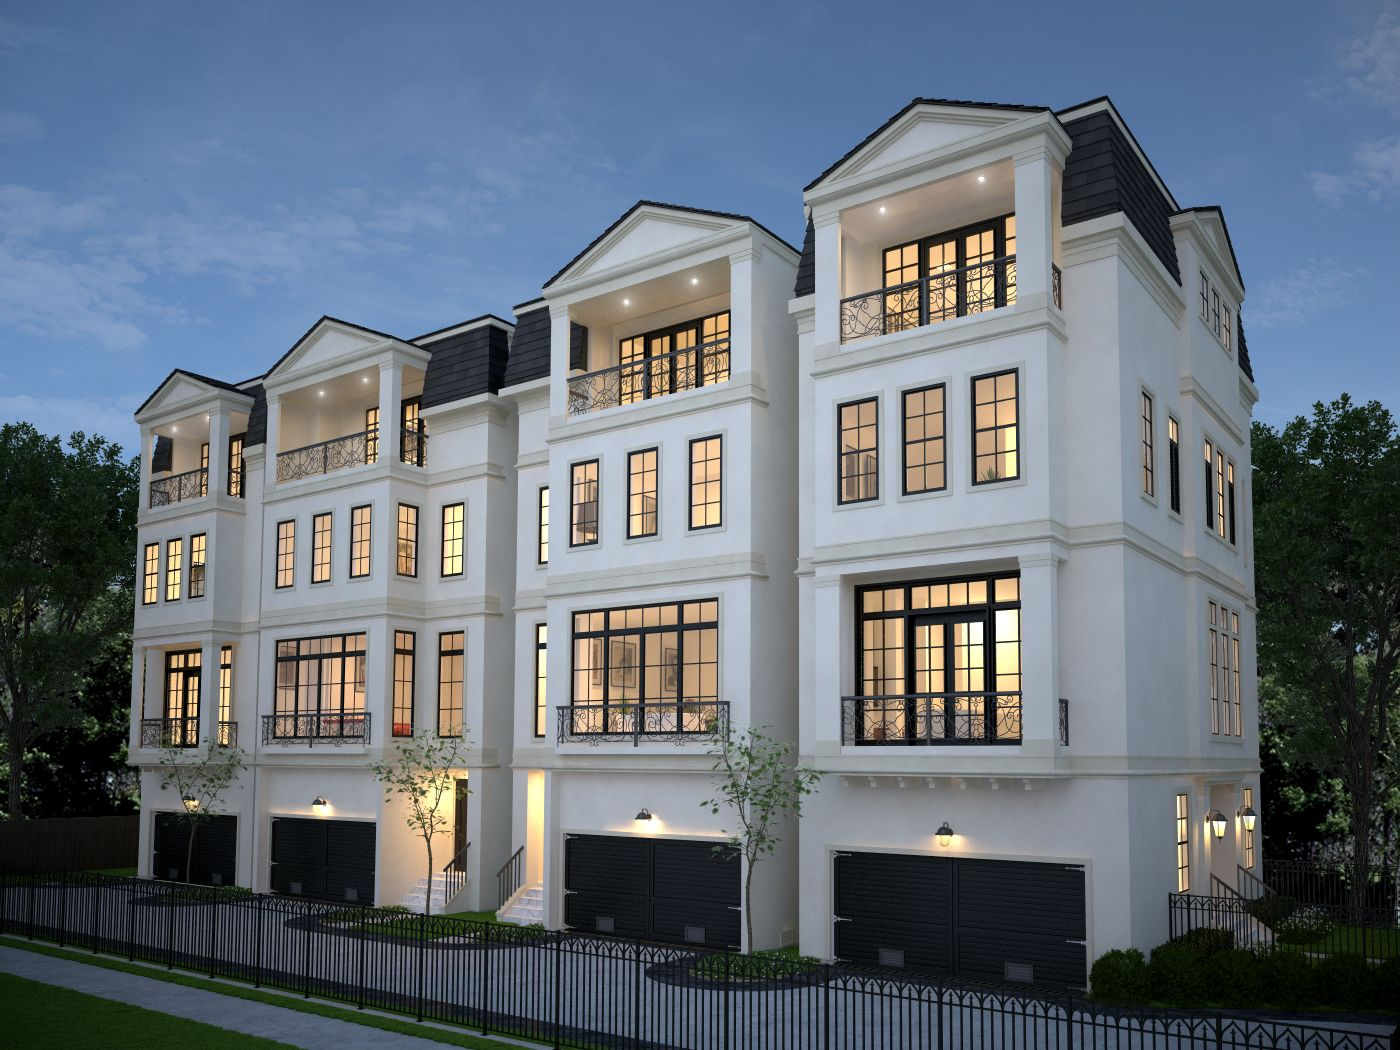 Four 4 story townhomes in houston by preston wood assoc for Modern houses in houston